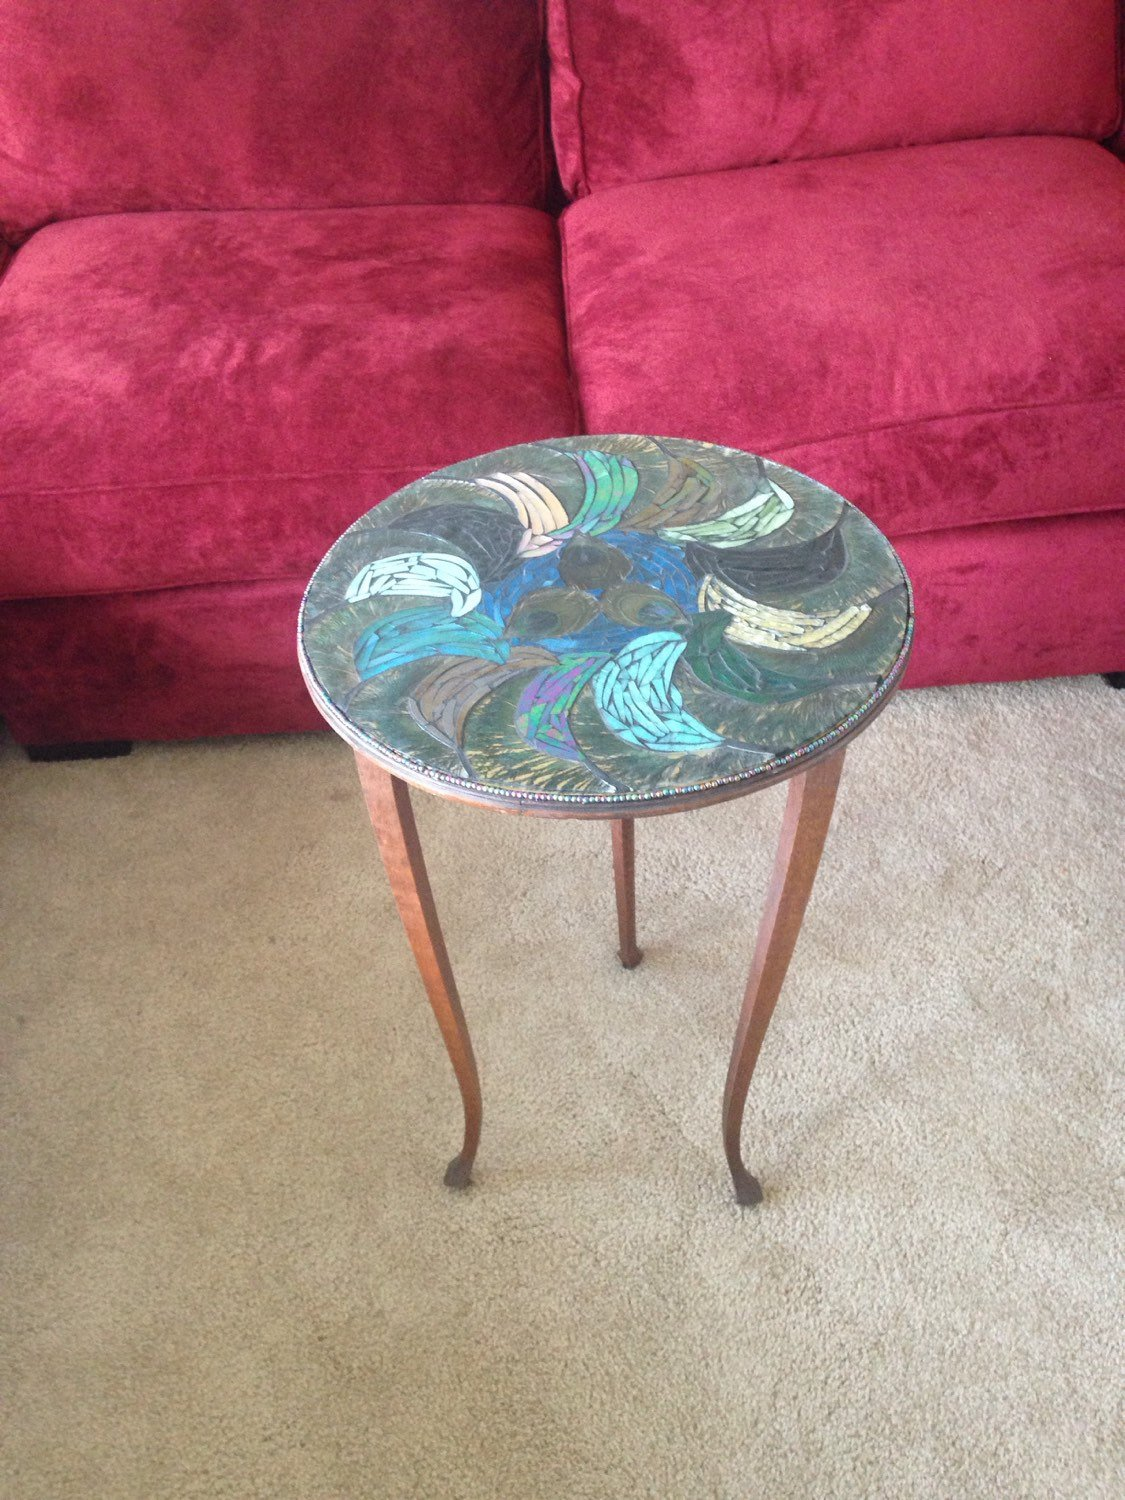 mixed media mosaic peacock feather stained glass accent table fullxfull hmqo dark wood coffee and end tables herman miller west elm square dining childrens bedroom furniture